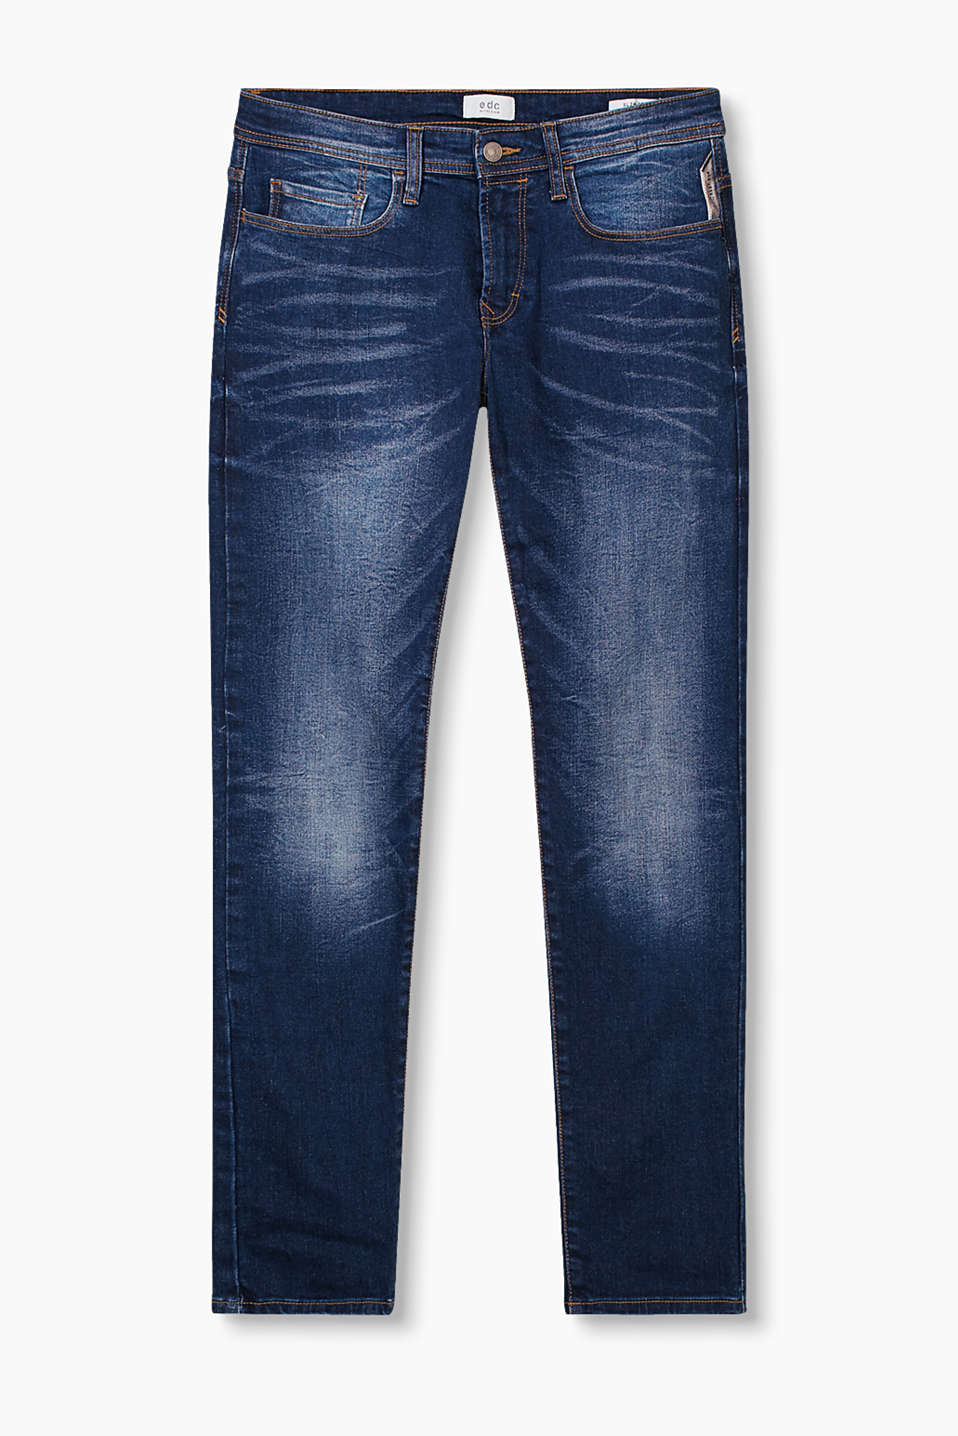 Basic 5 pocket jeans made of firm denim with dark, washed-effect areas and a zip fly